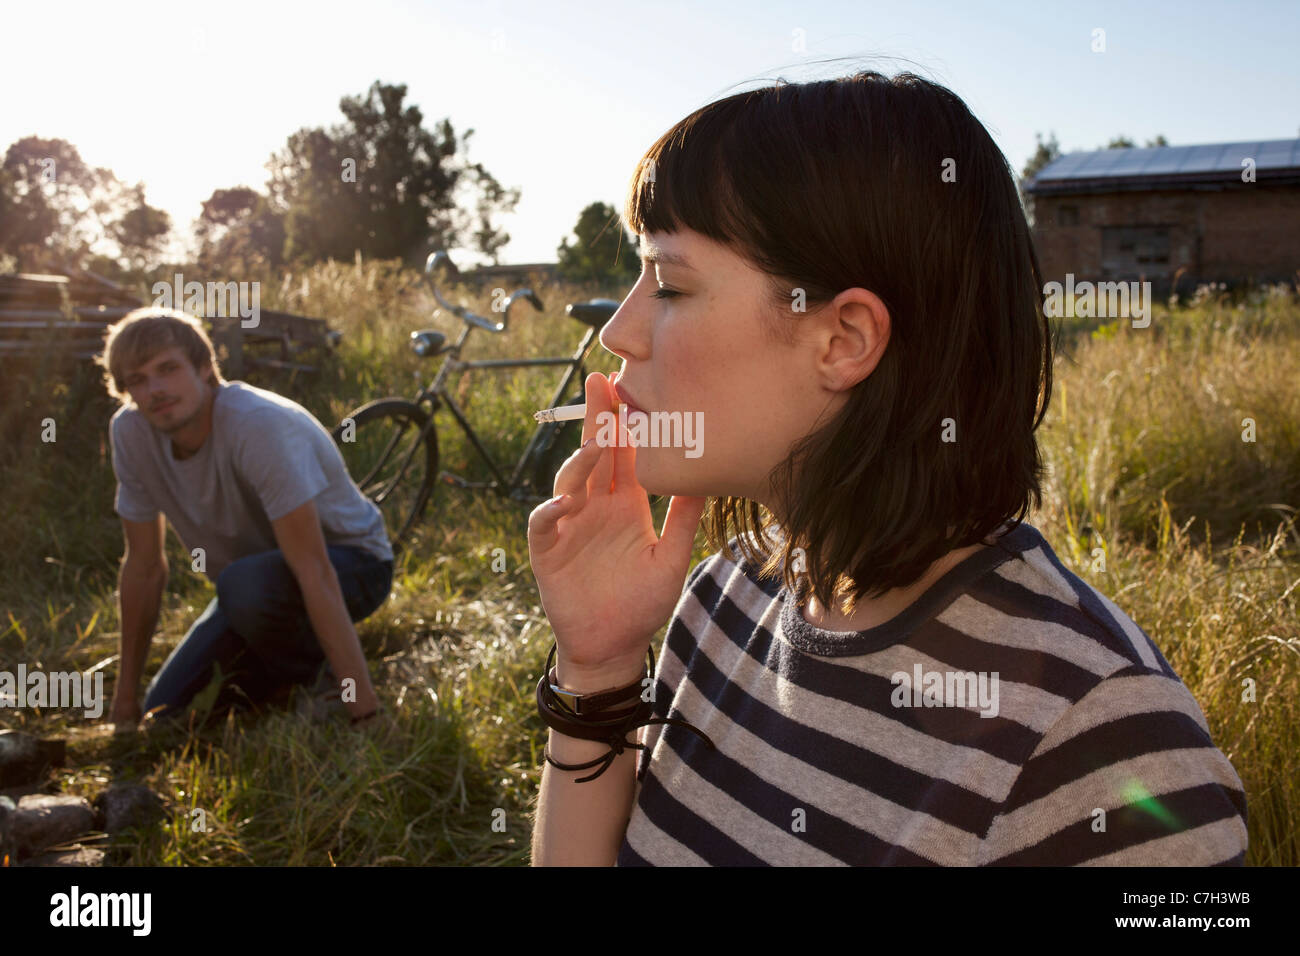 Girl smoking in field as guy in background watches - Stock Image